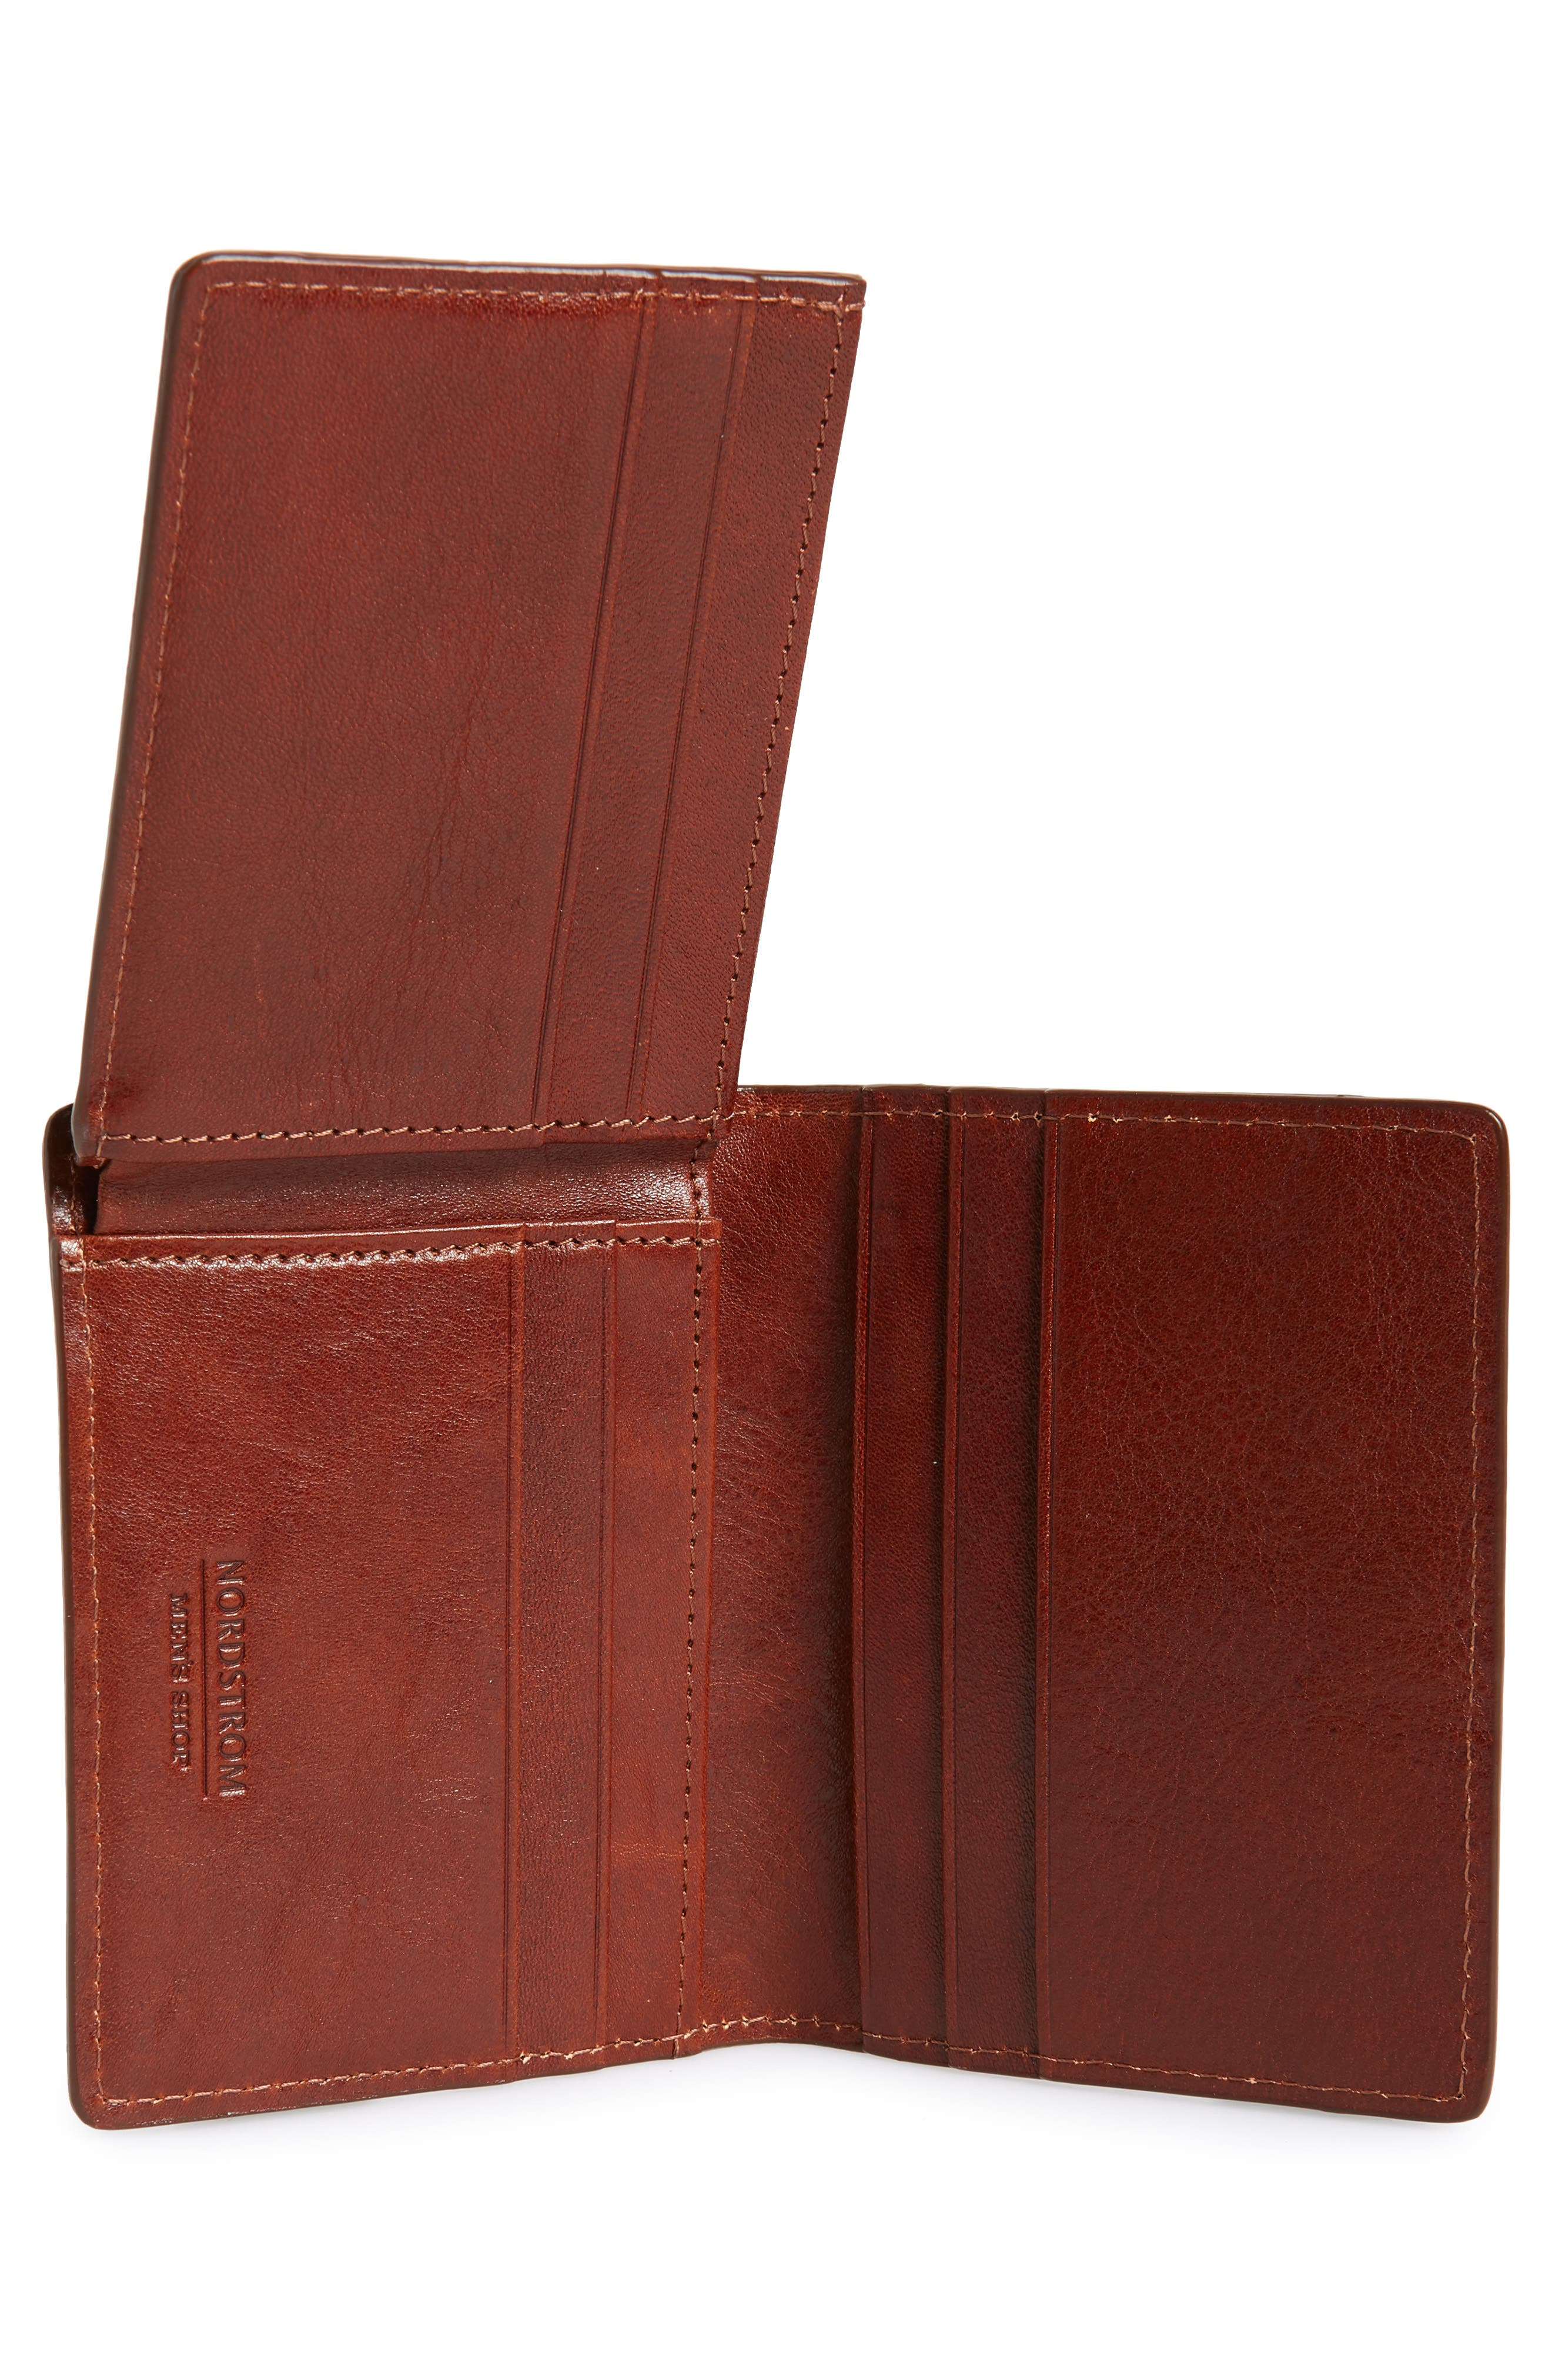 Richmond Leather Wallet,                             Alternate thumbnail 4, color,                             BROWN HENNA